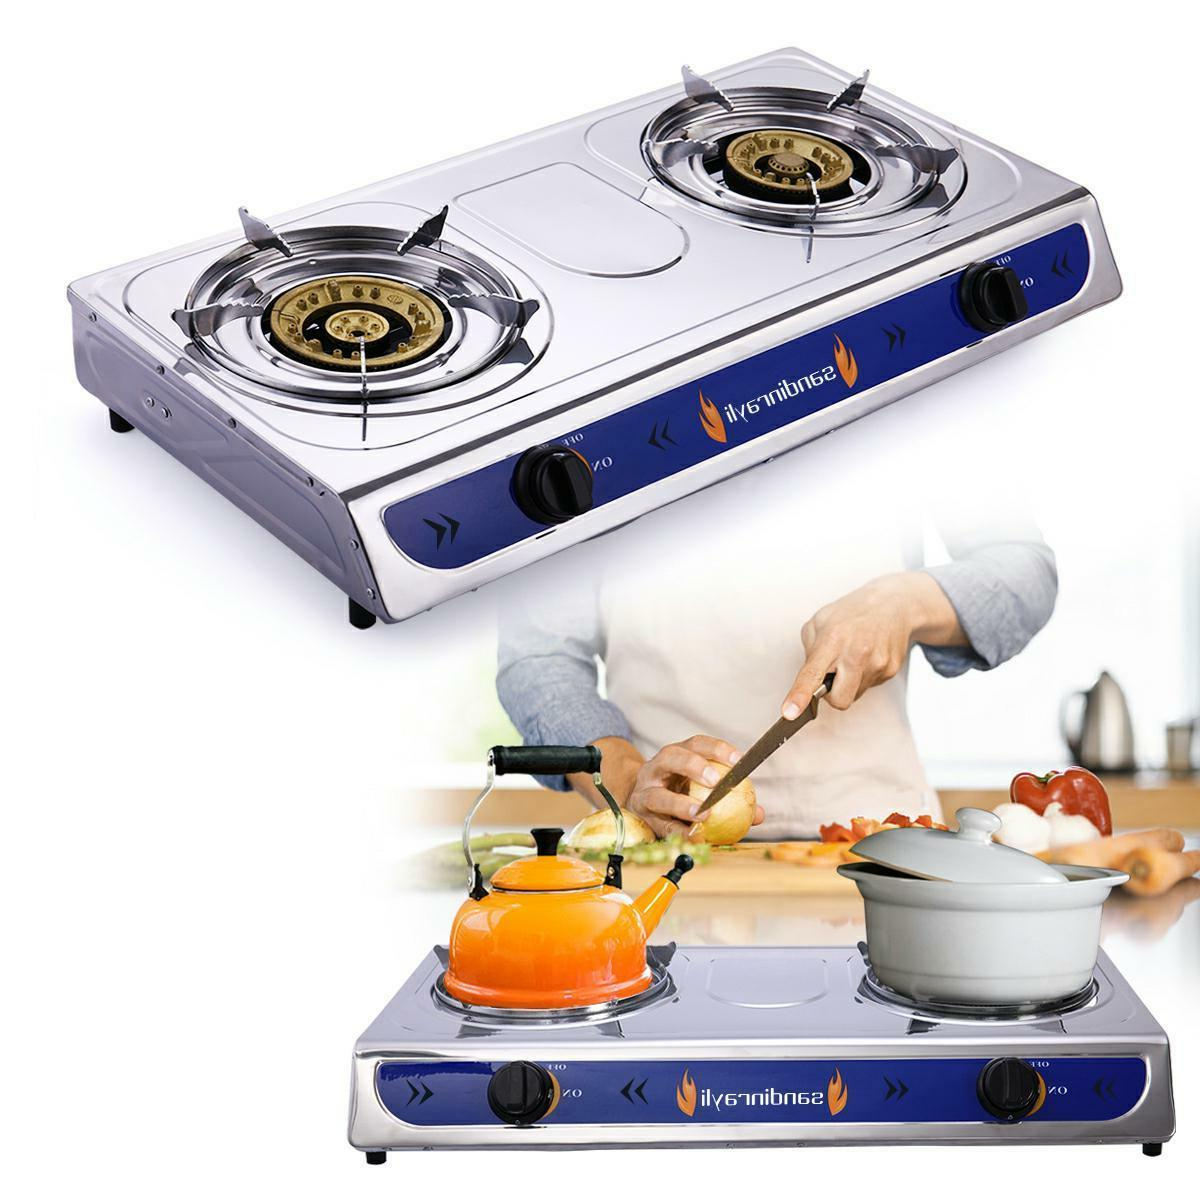 stainless steel double burner gas